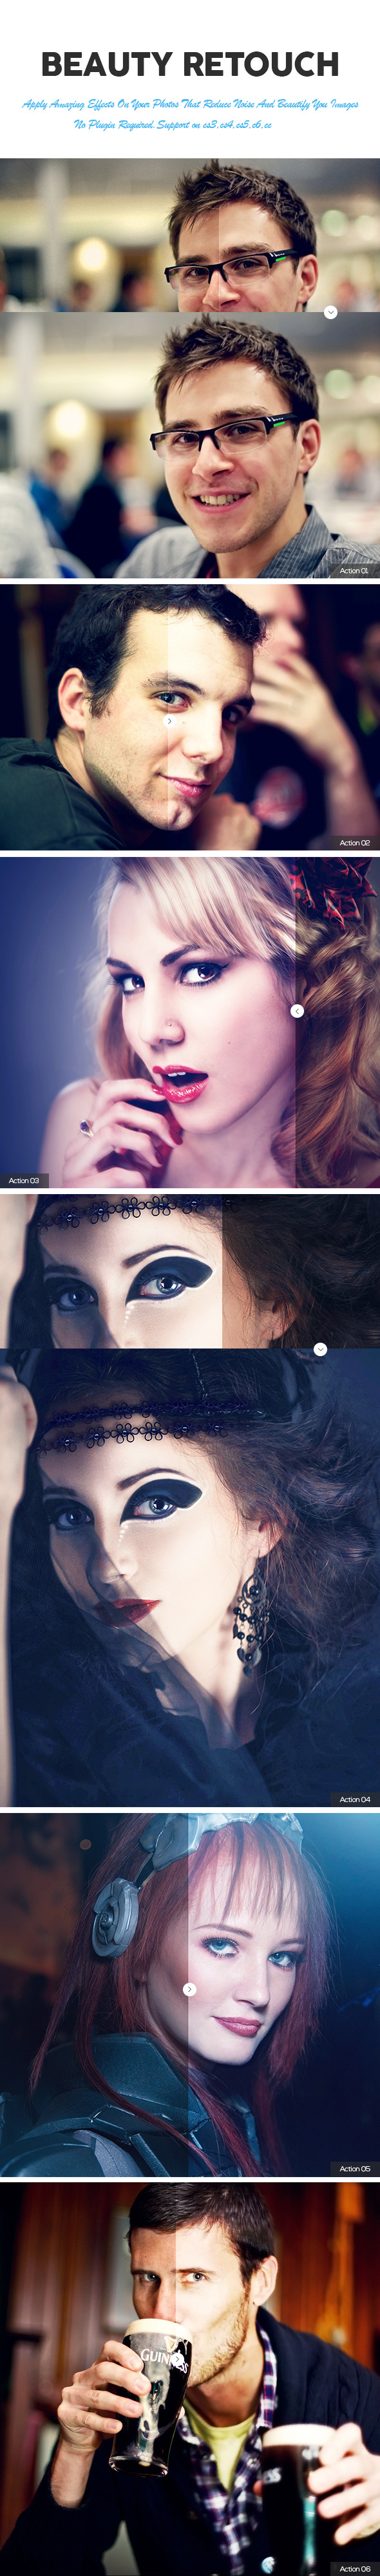 GraphicRiver Beauty Retouch Photoshop Action 11411734